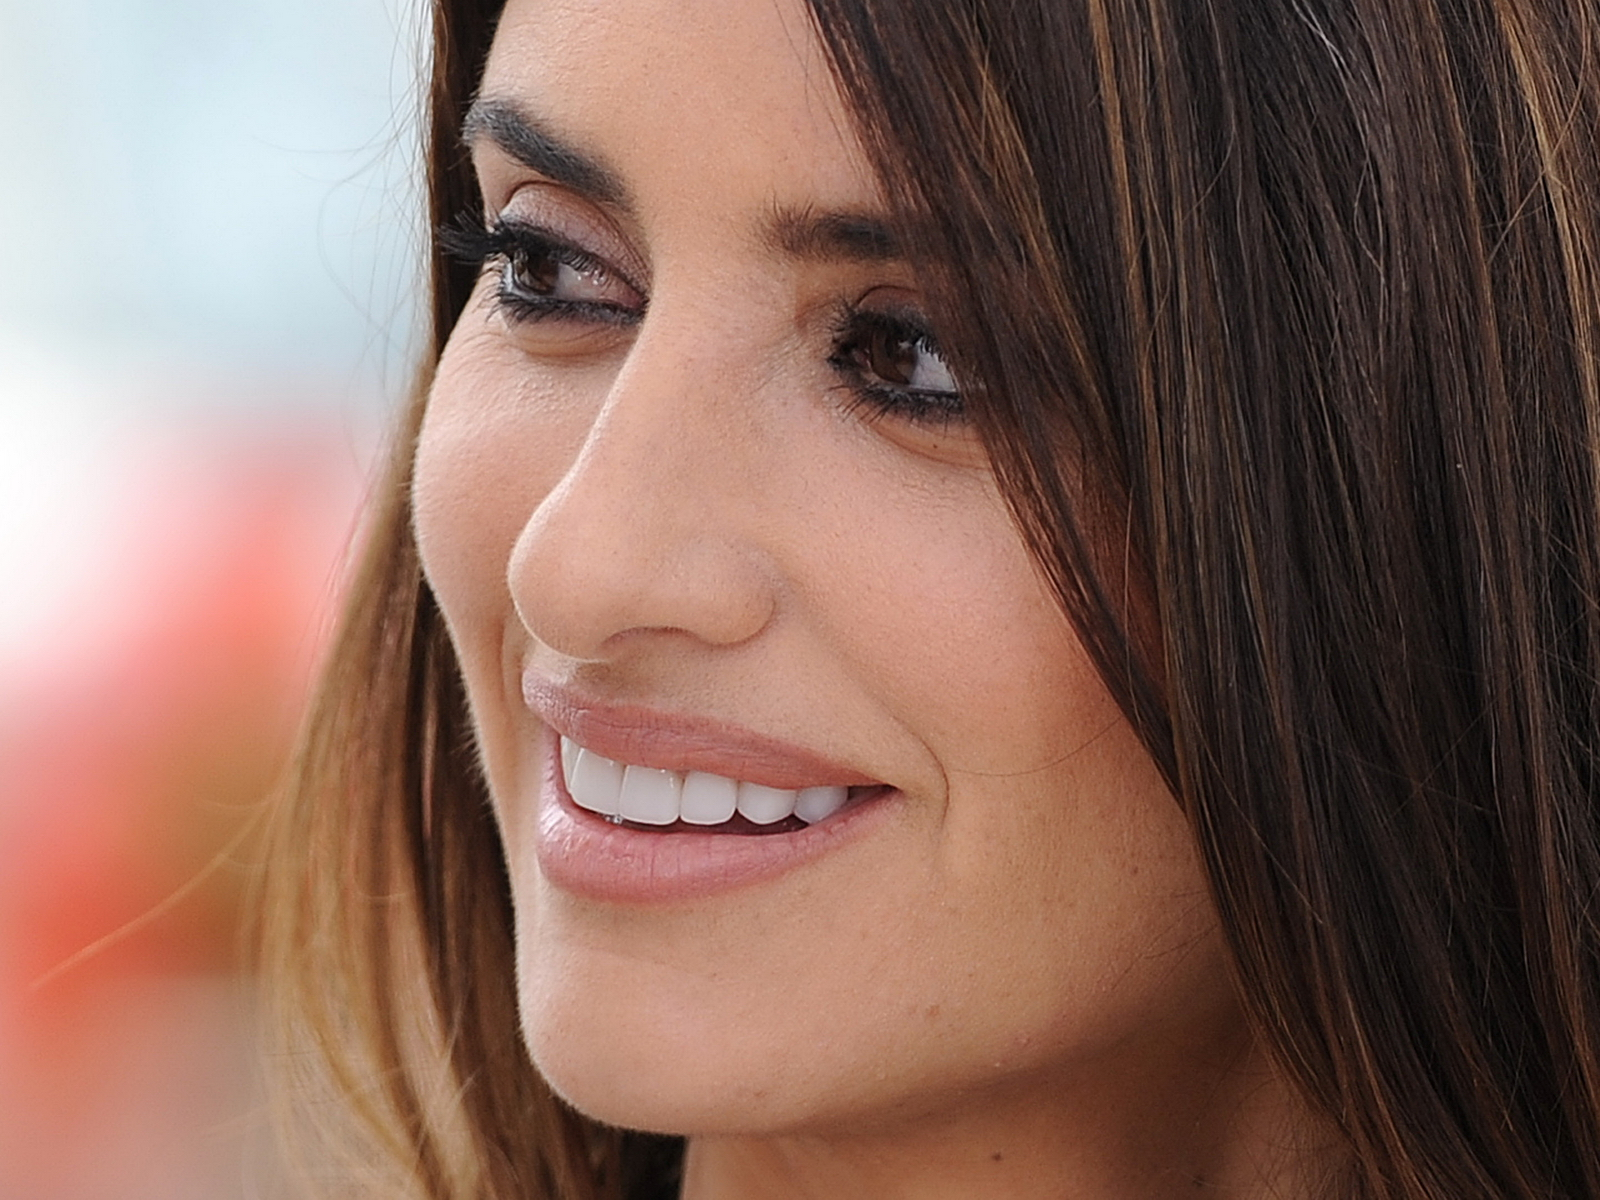 From the indexes of the famously temperamental British amusement press: Penelope Cruz is perhaps clearly set to co-star inverse Daniel Craig in the ...